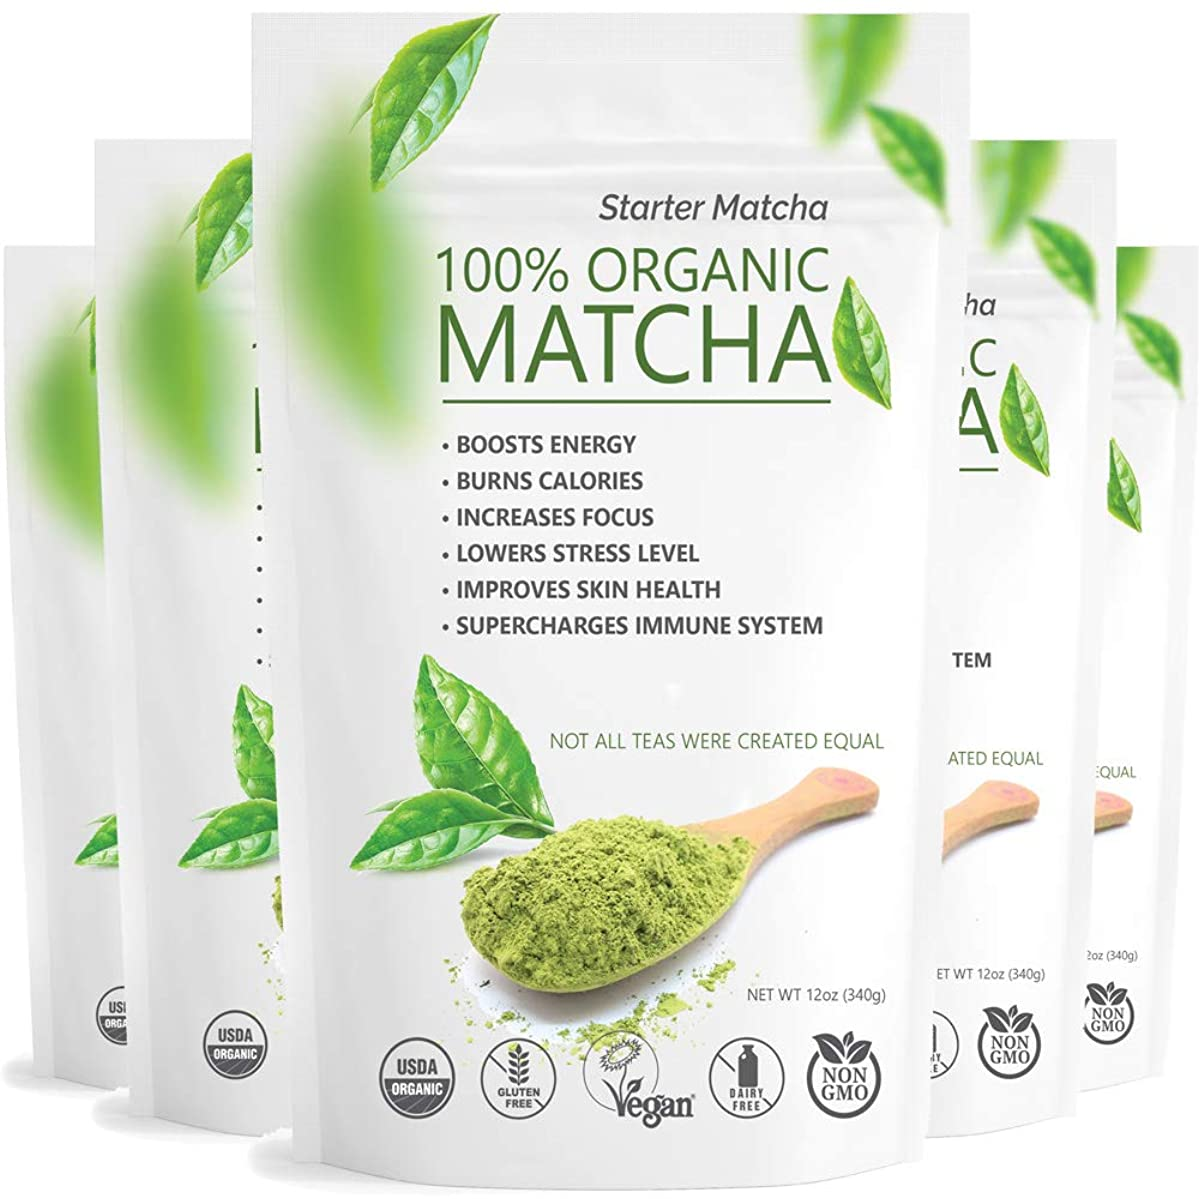 Starter Matcha - Pure Matcha Green Tea Powder, Incredible Flavor, Delicate Aroma, Natural Energy Booster and Fat Burner (5 x 12oz)